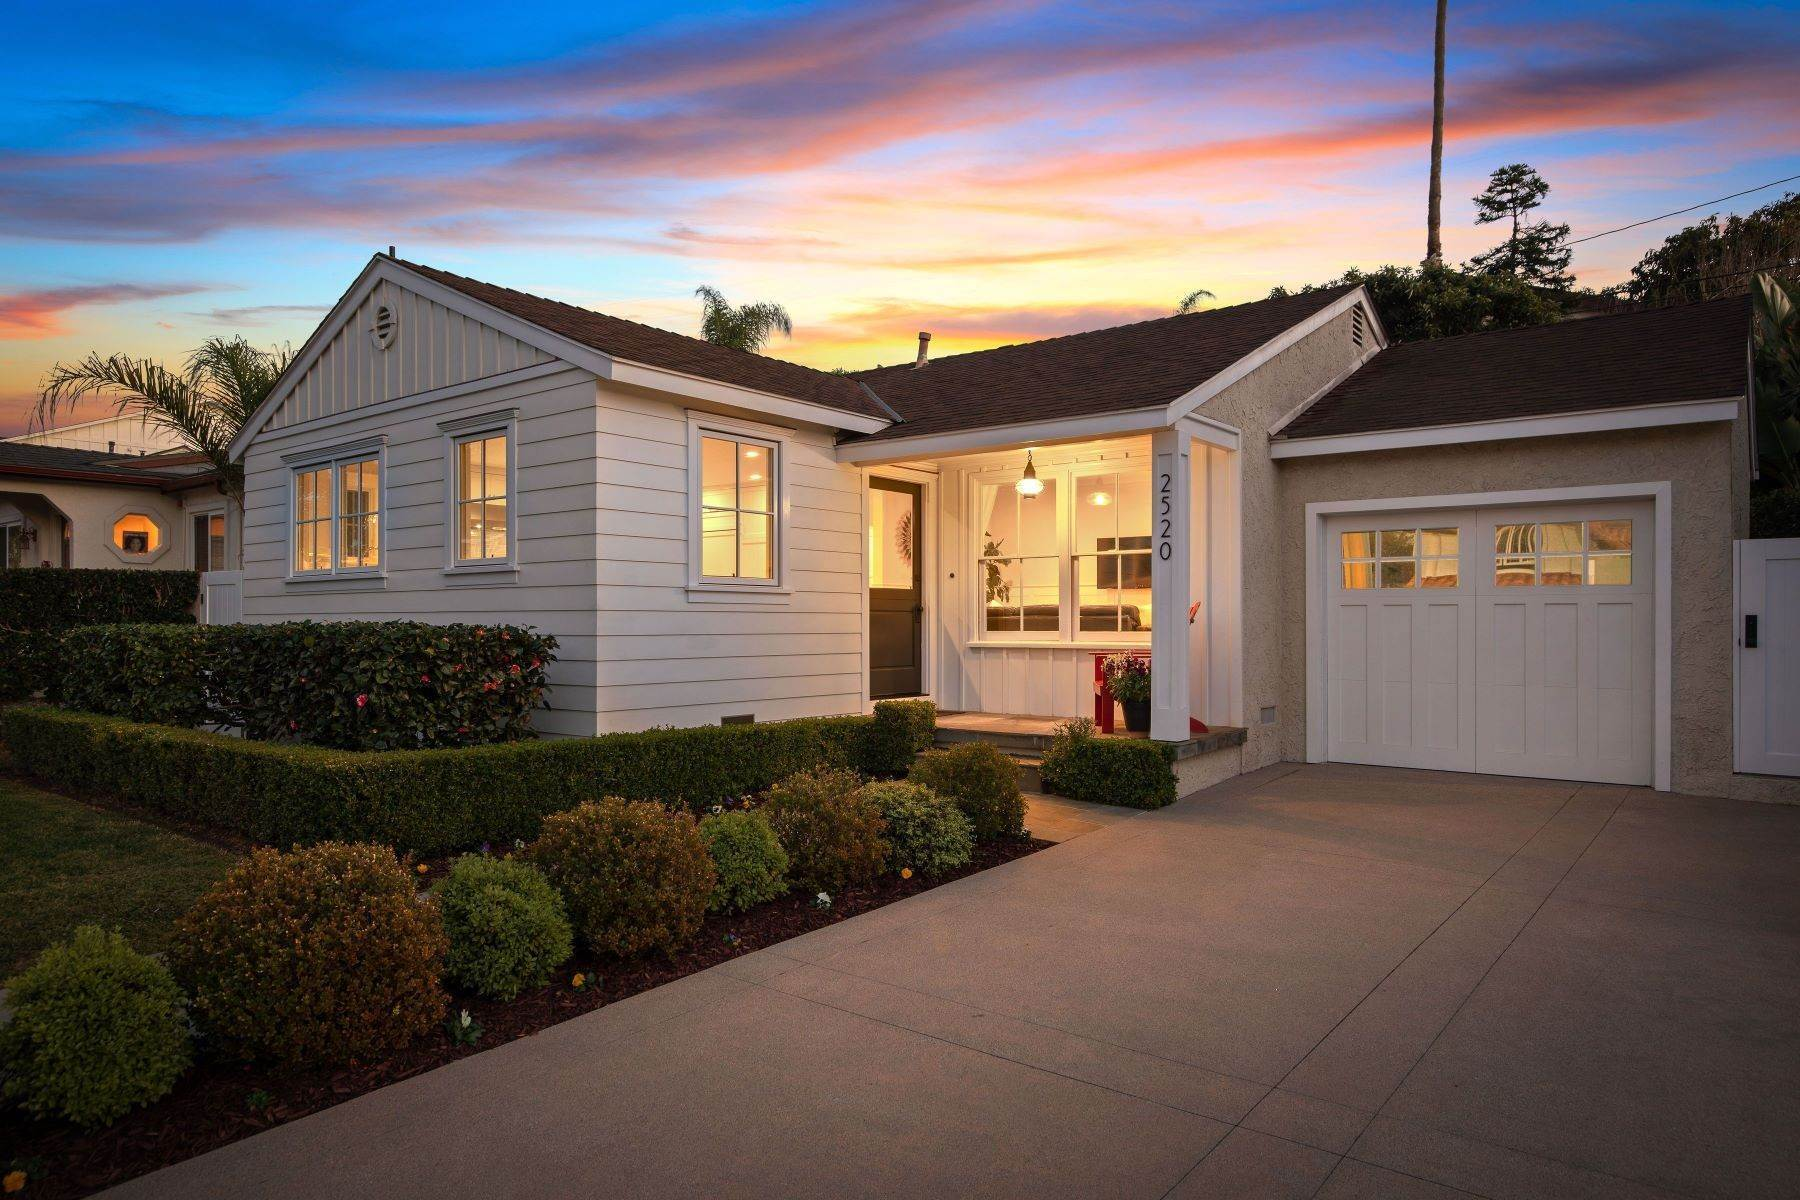 Single Family Homes for Sale at 2520 Alvord Lane, Redondo Beach, CA 90278 2520 Alvord Lane Redondo Beach, California 90278 United States